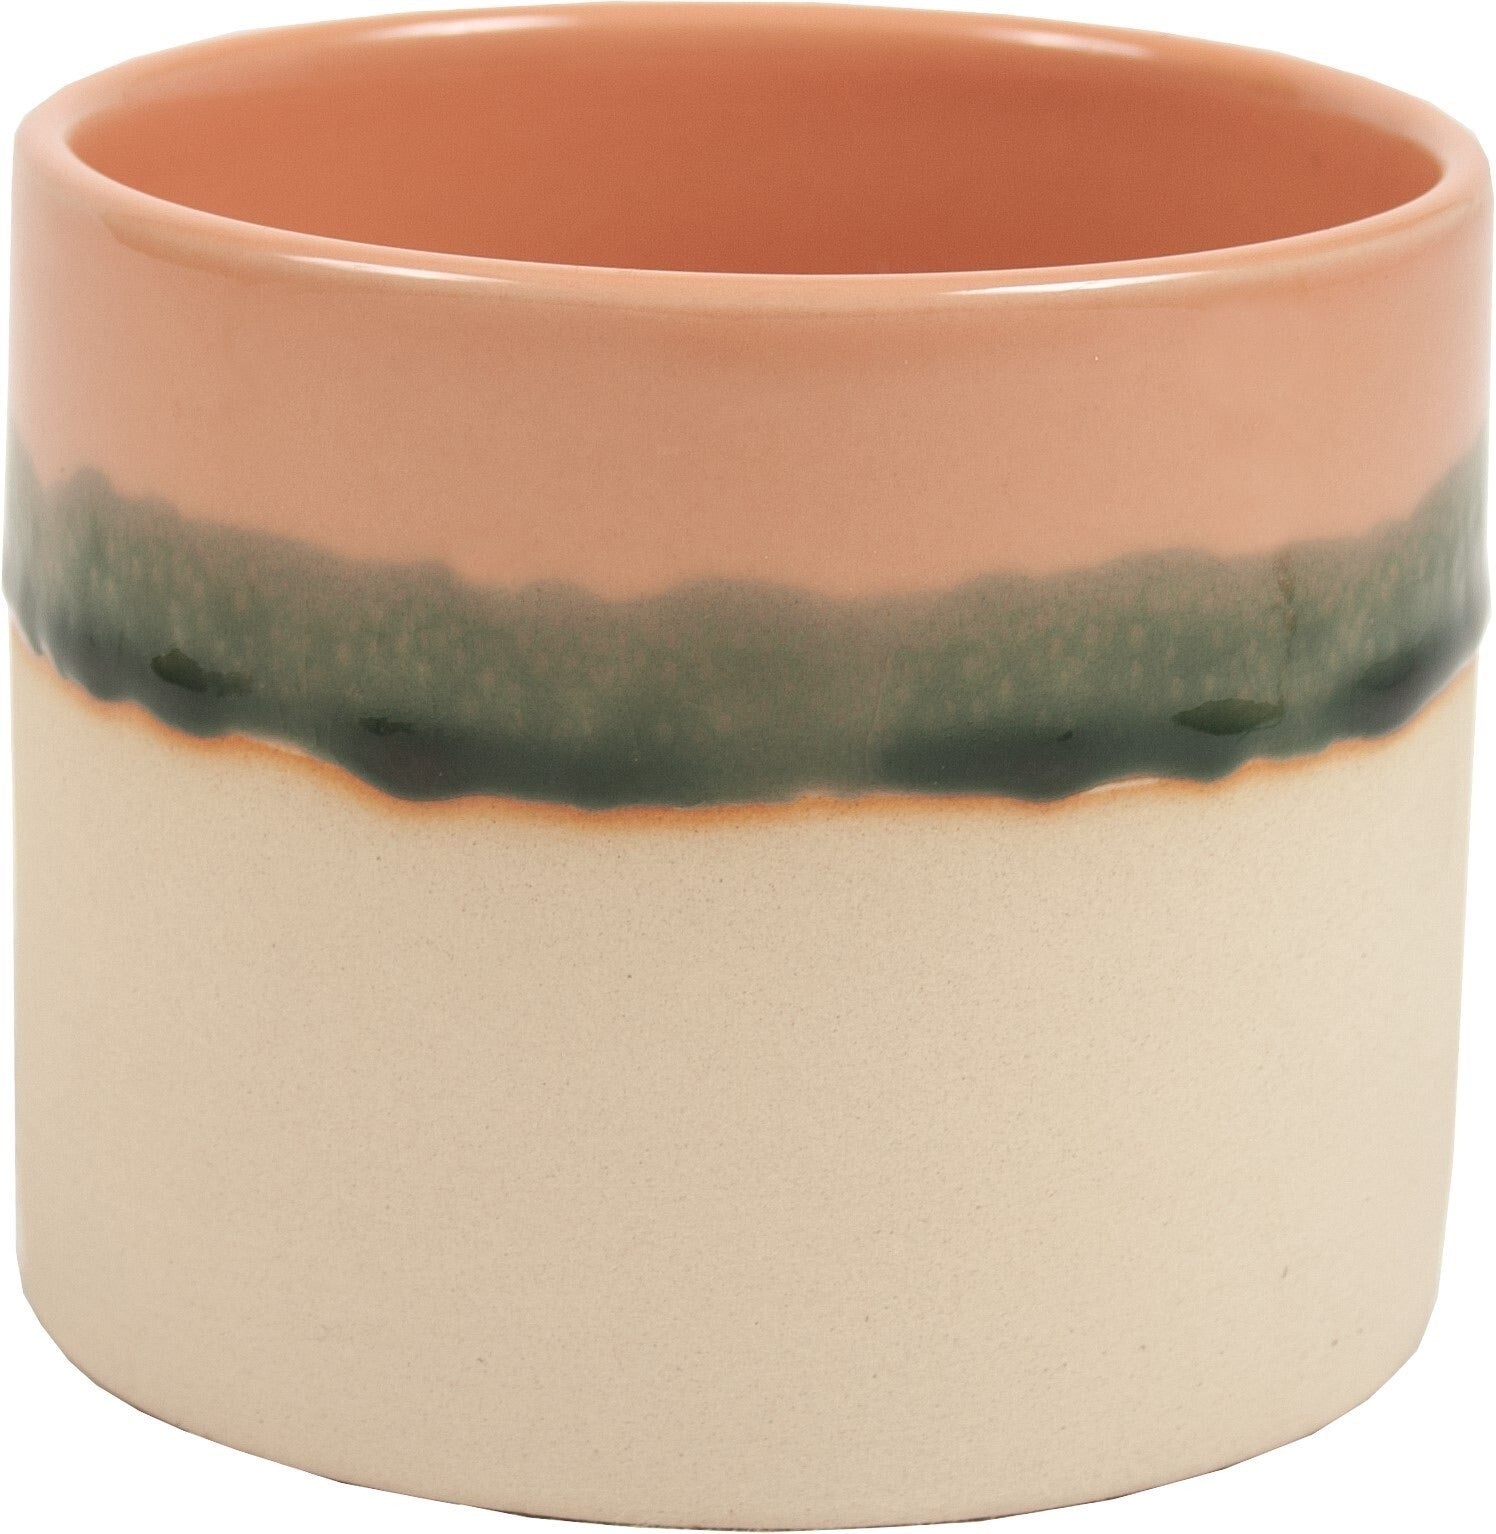 METRO PINK REACTIVE GLAZE CERAMIC POT